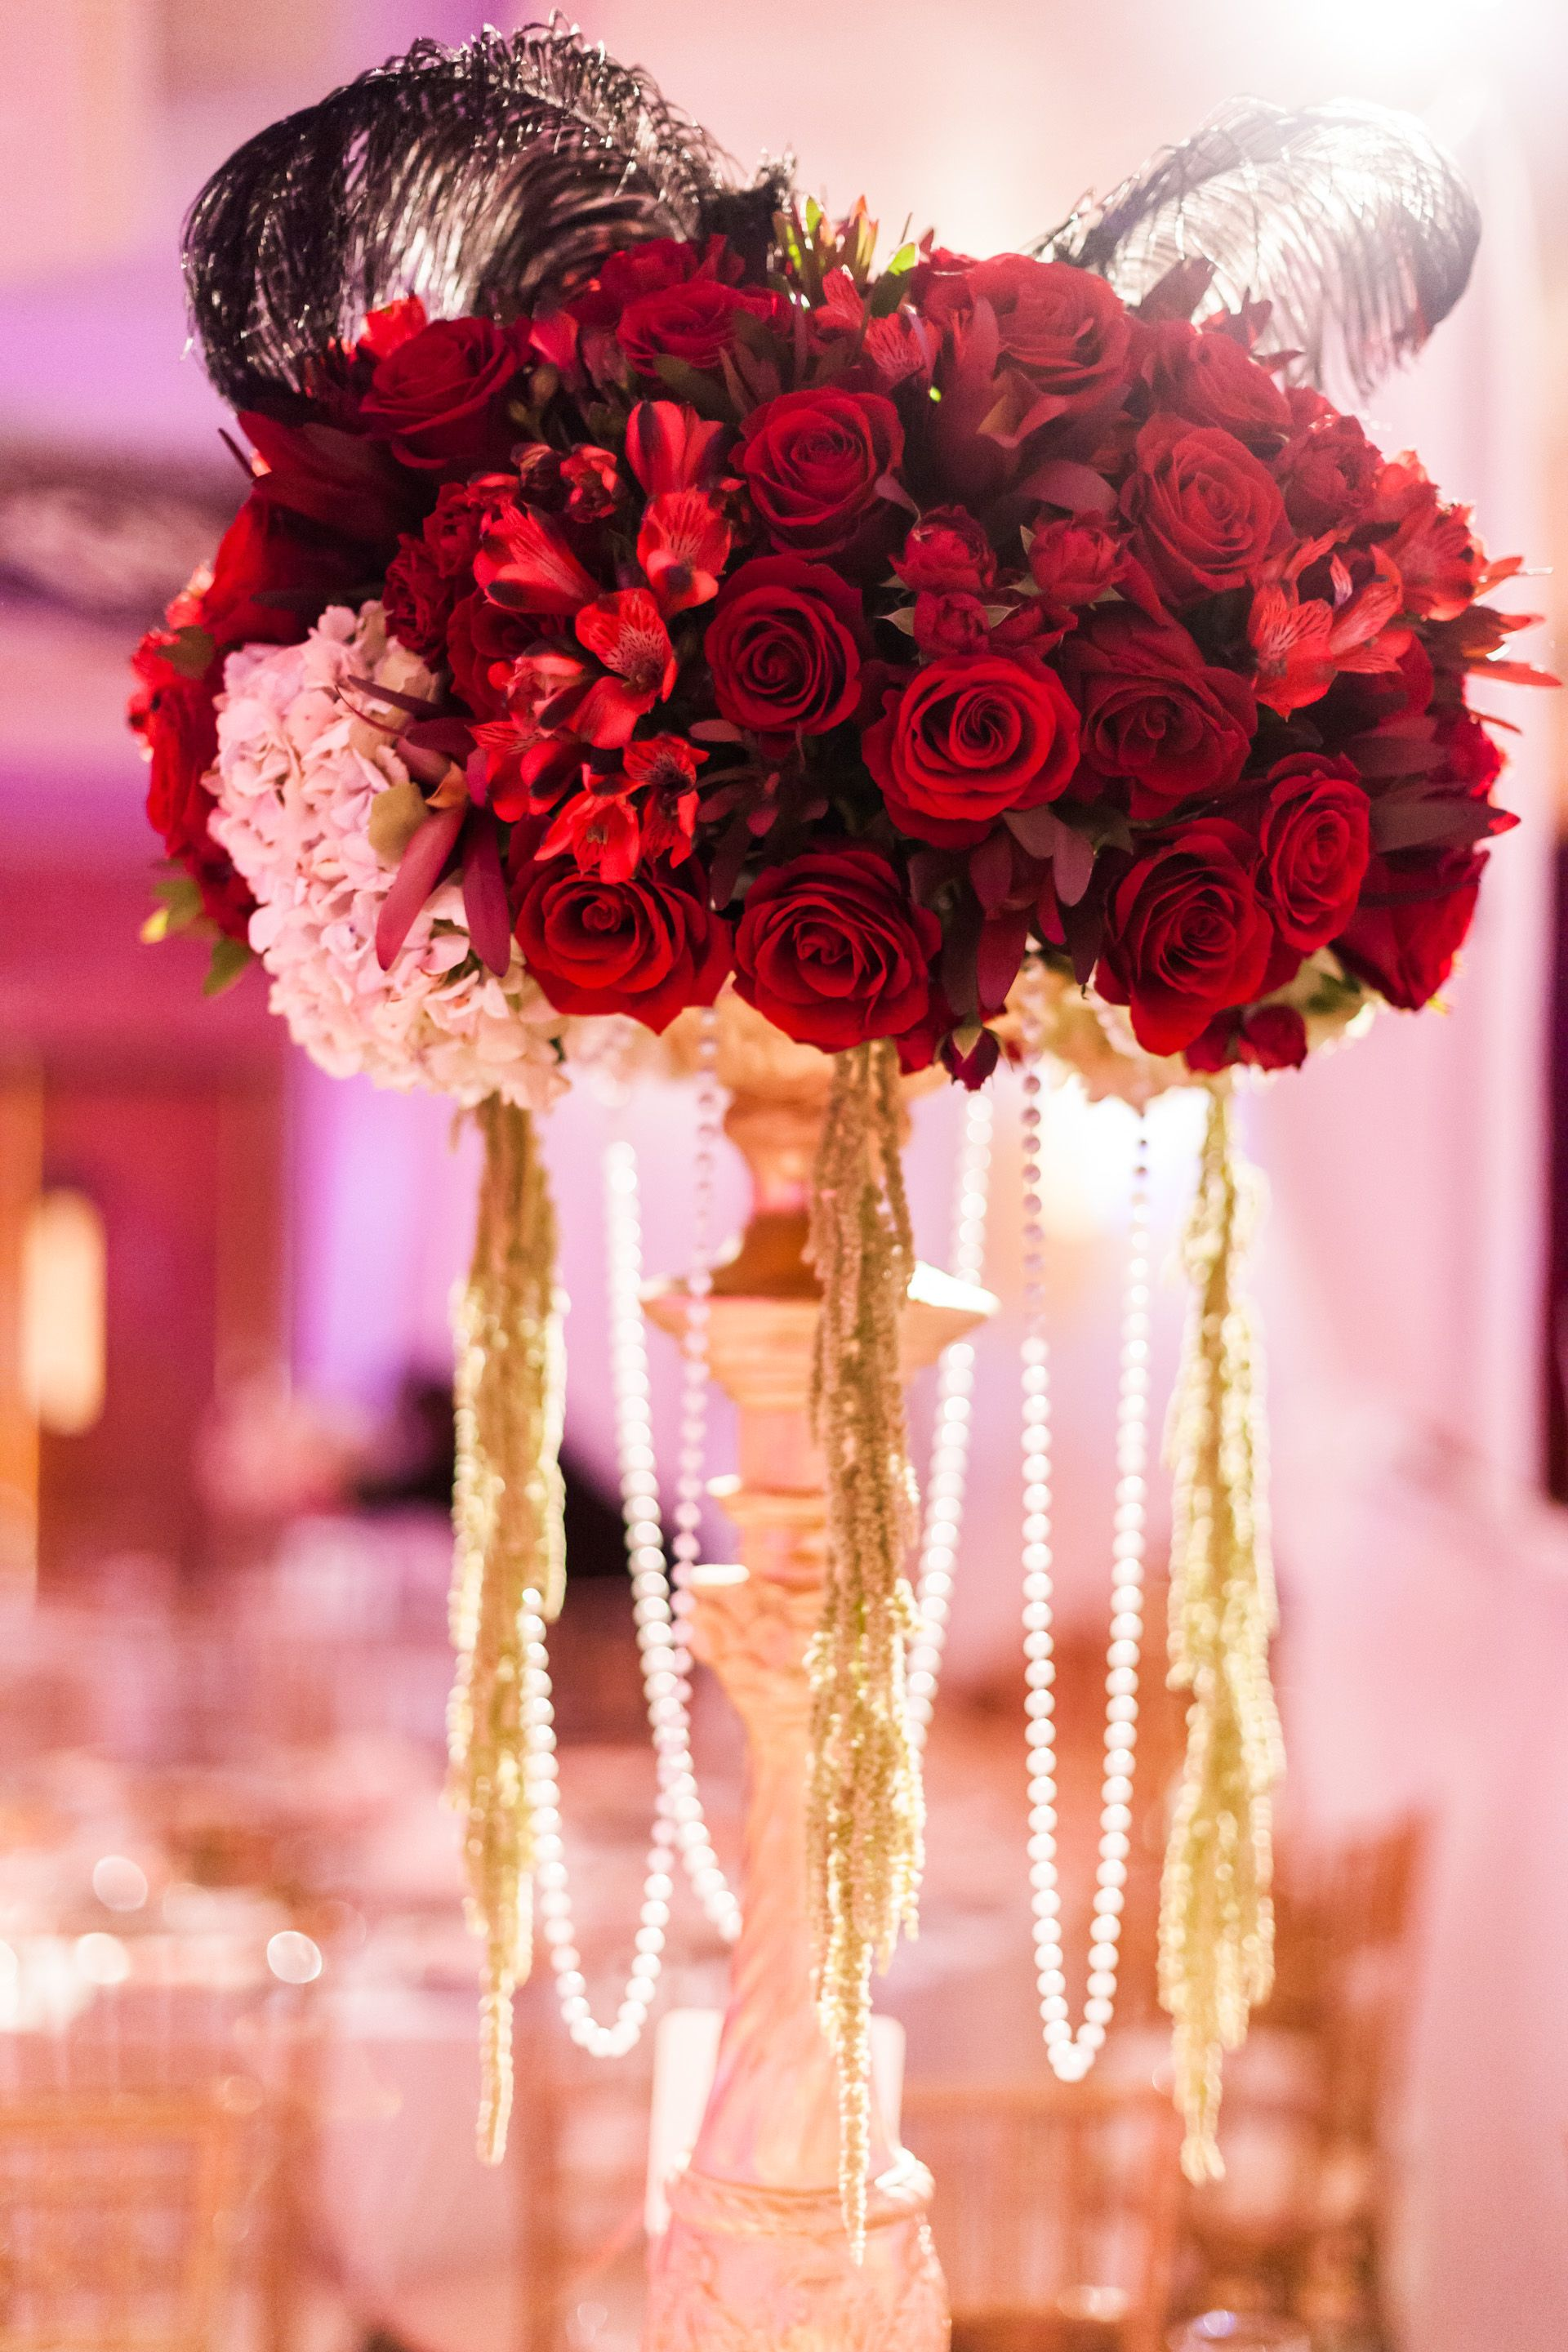 tall red rose wedding centerpieces |  weddings-red-rose-with